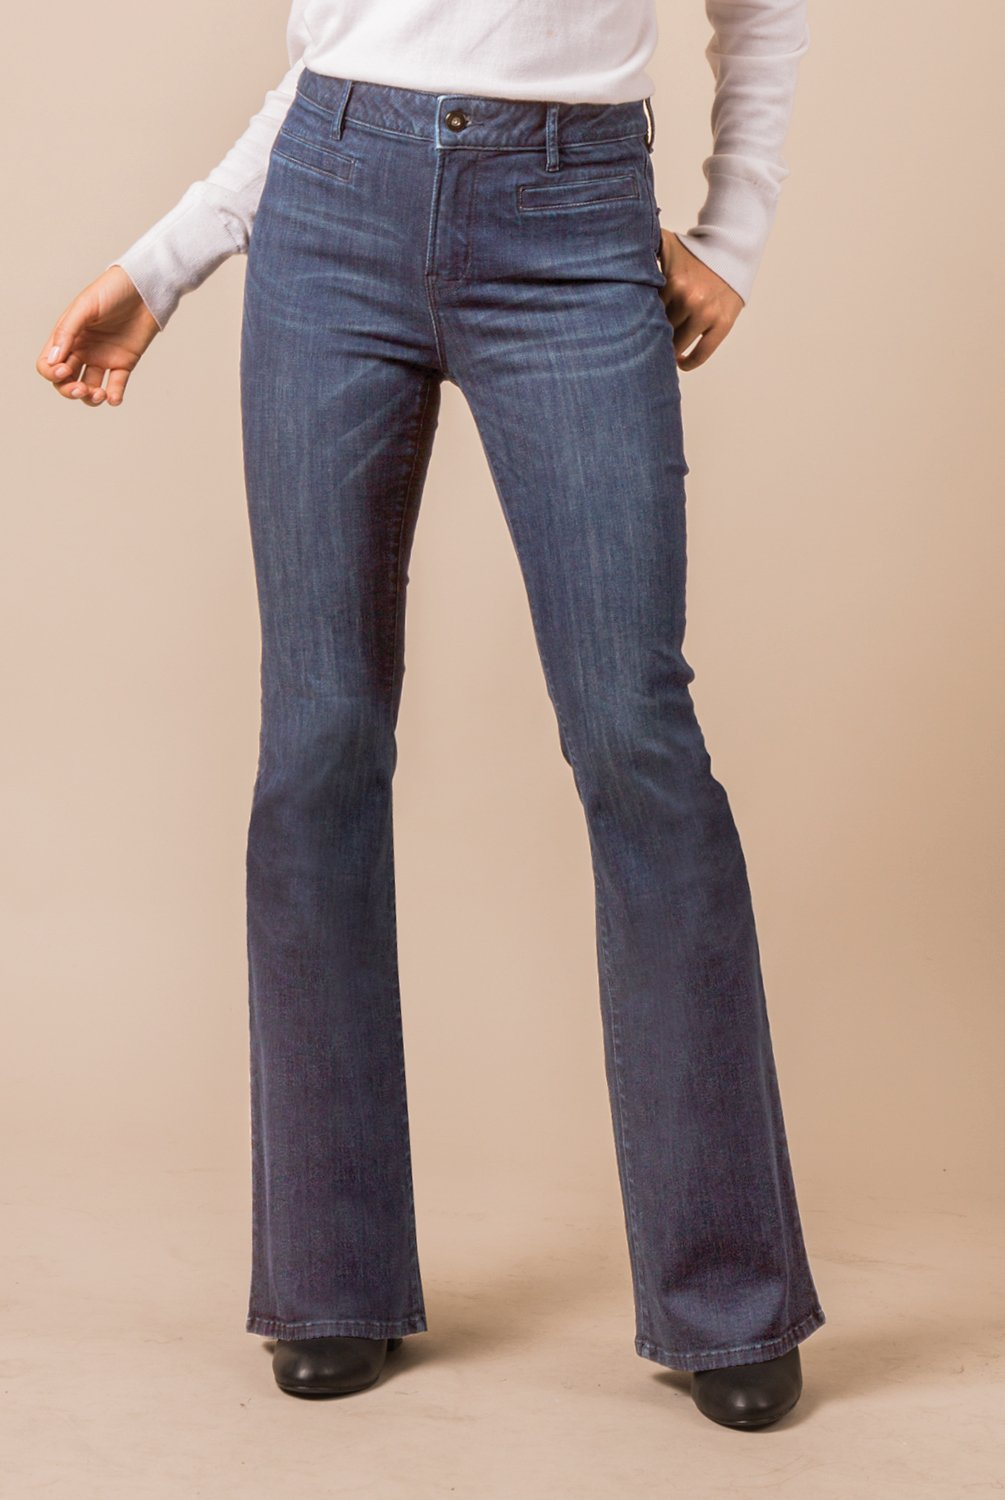 Boot Cut Jeans - Medium Wash Denim (Front)